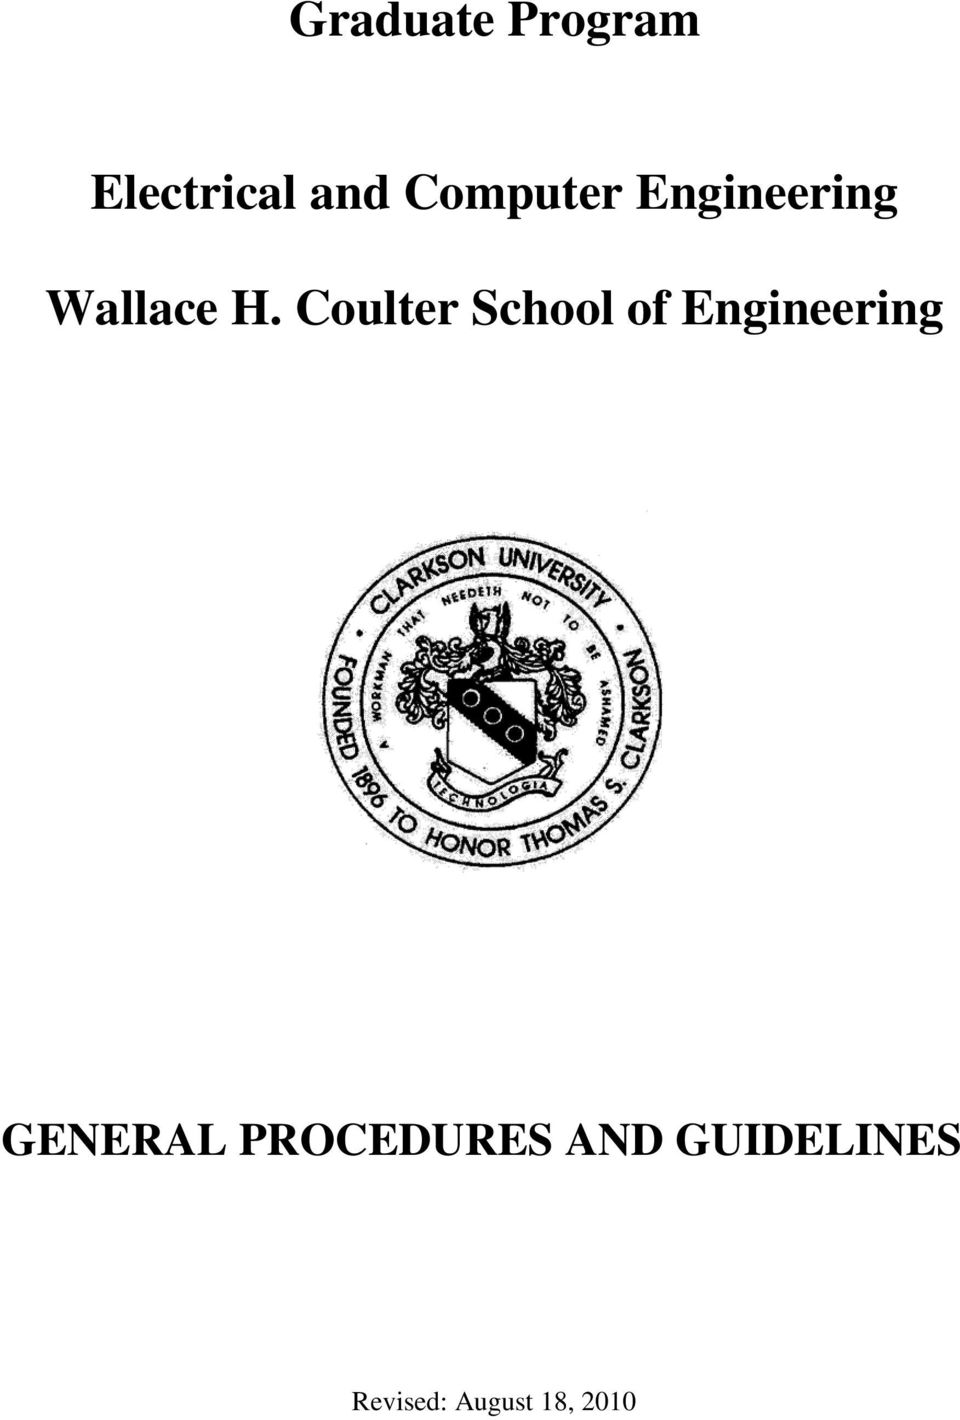 Coulter School of Engineering GENERAL